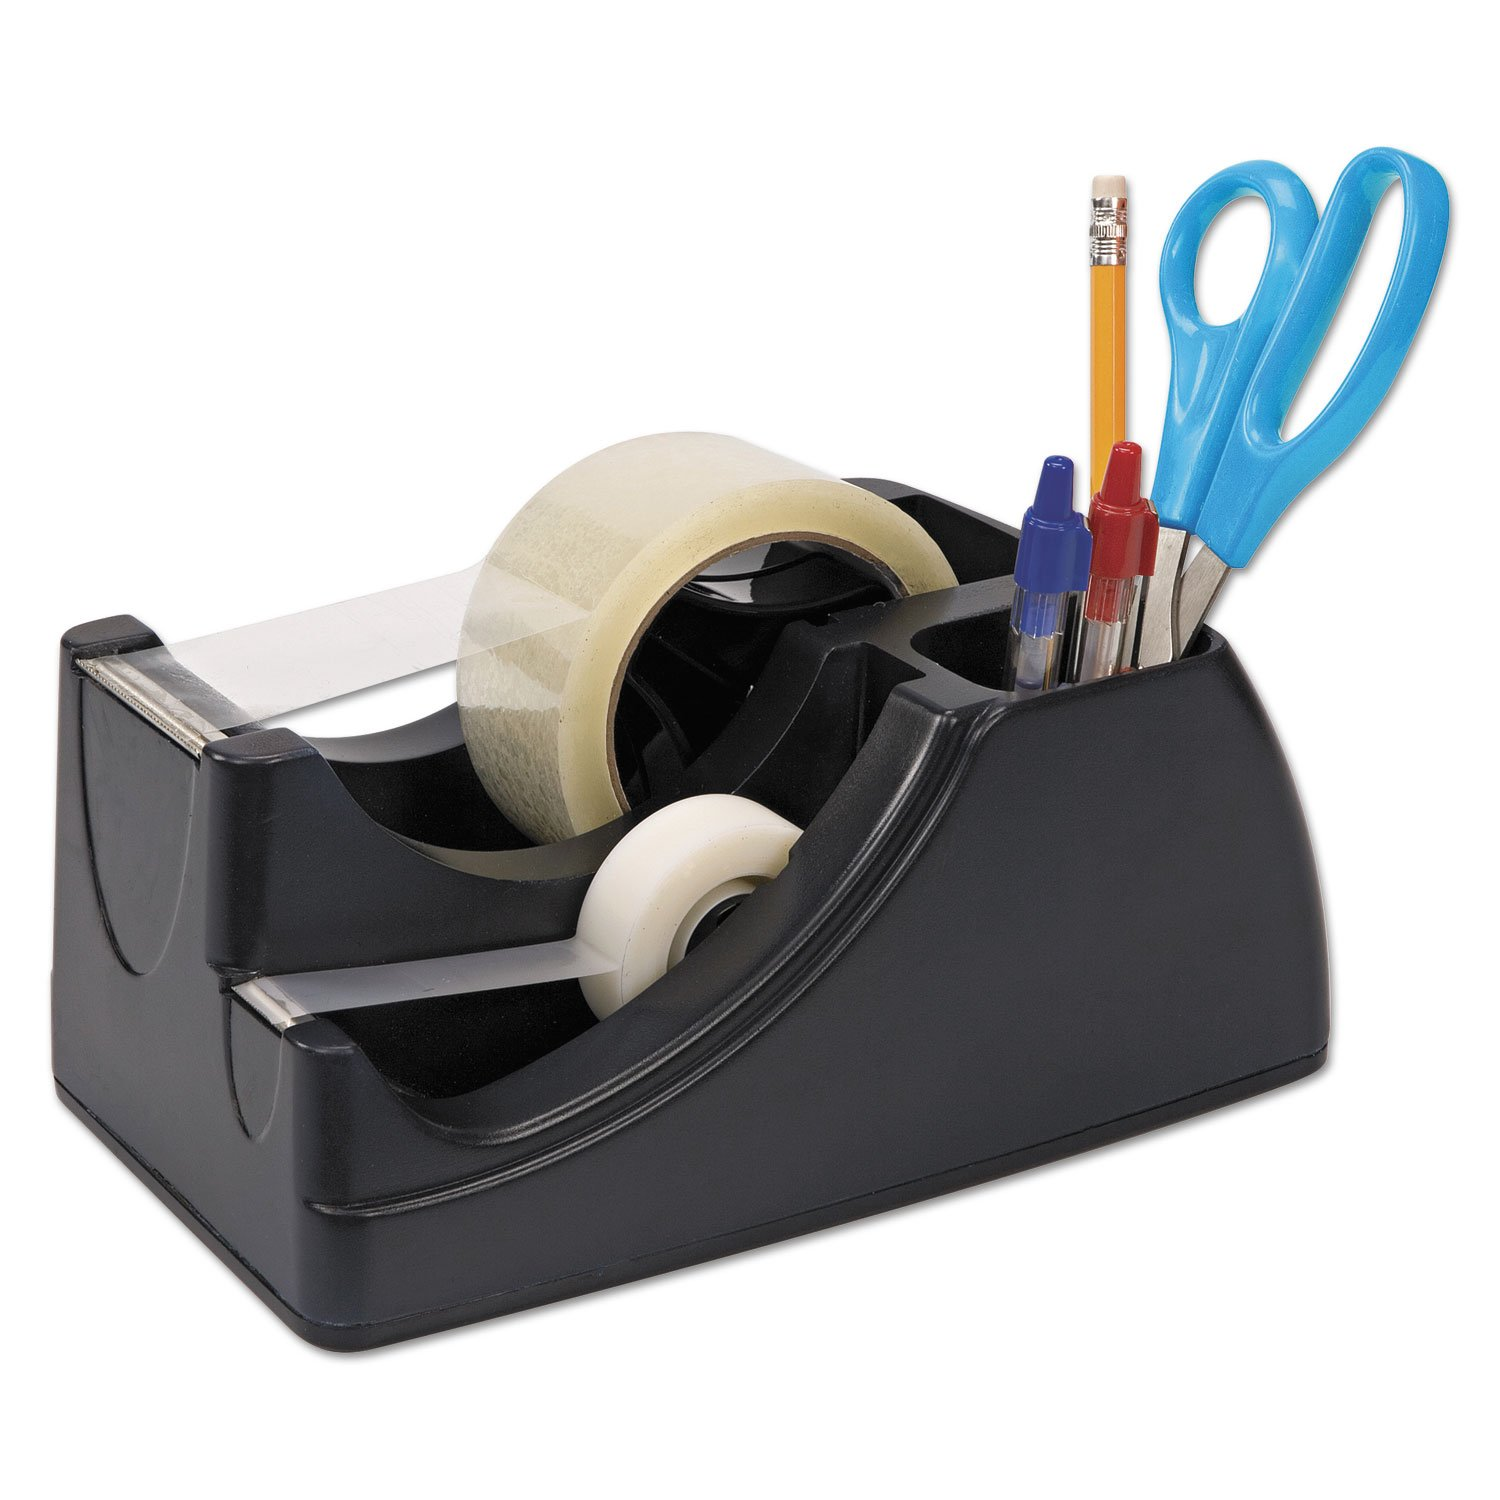 Officemate Recycled 2-in-1 Heavy Duty Tape Dispenser, 1'' and 3'' Cores, Black (96690)